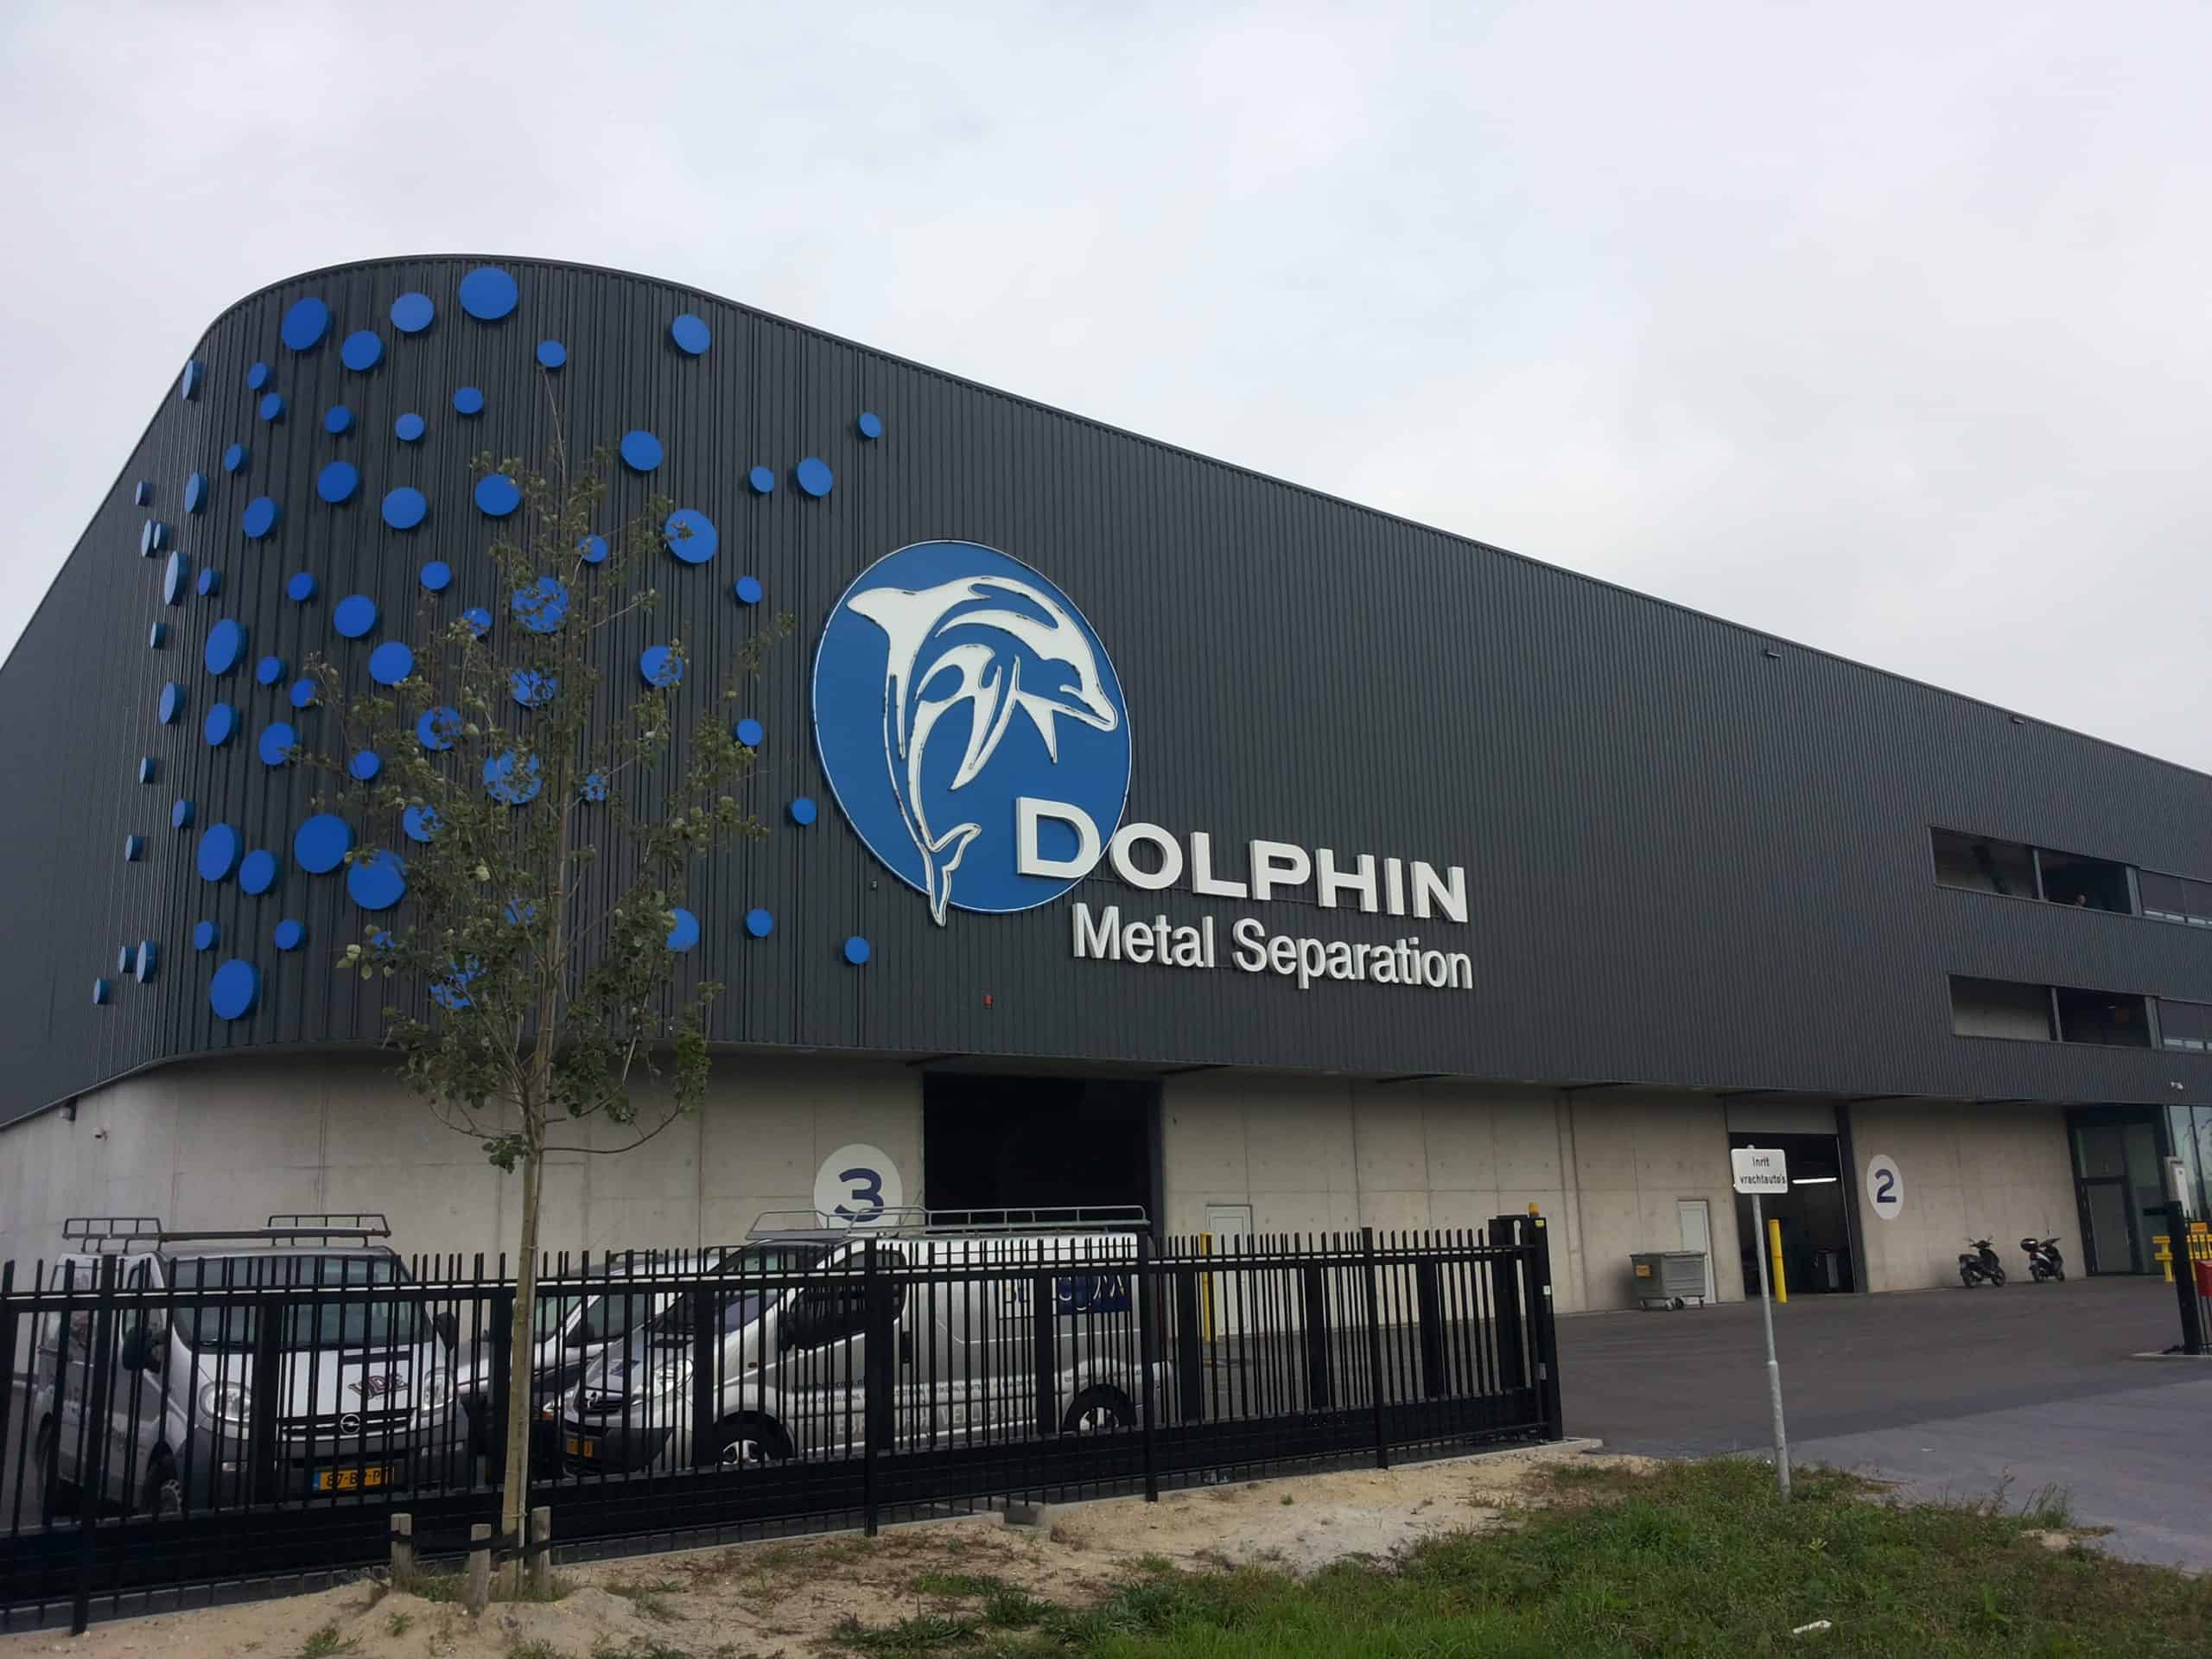 Dolphin Metal Separations